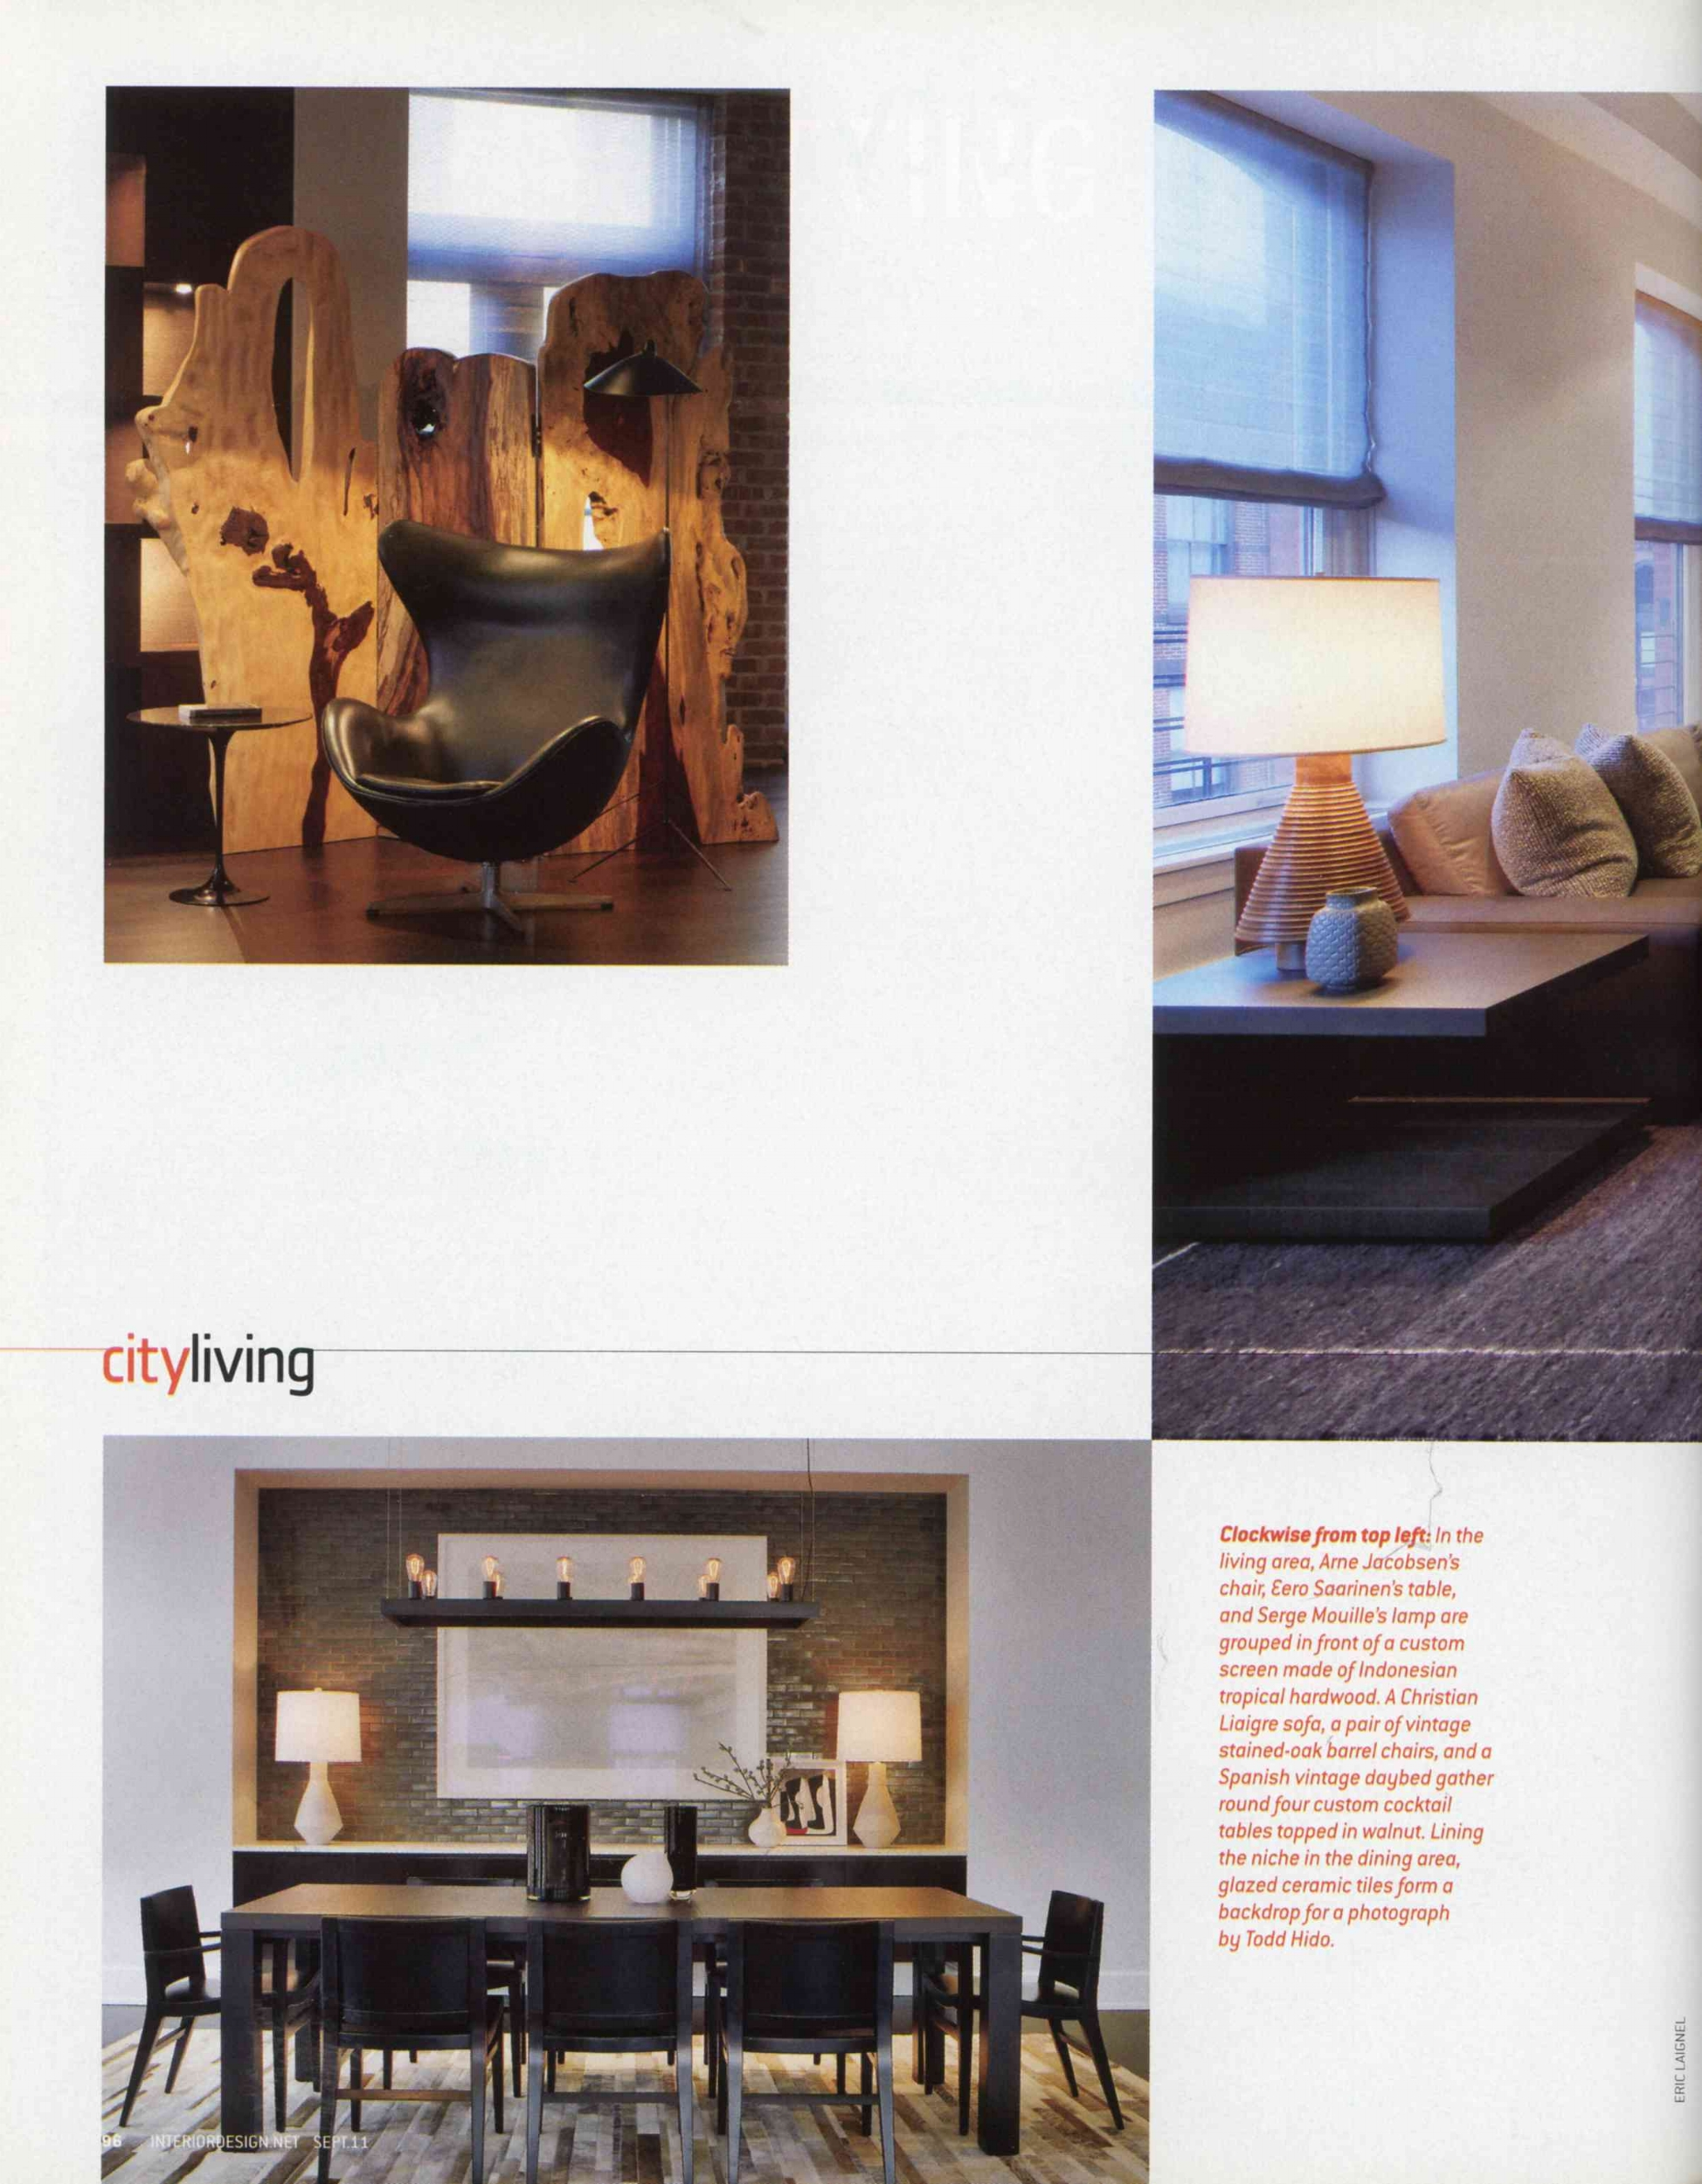 Interior Design_Nov 11_Soho Apt_Full Article_Page_4.jpg